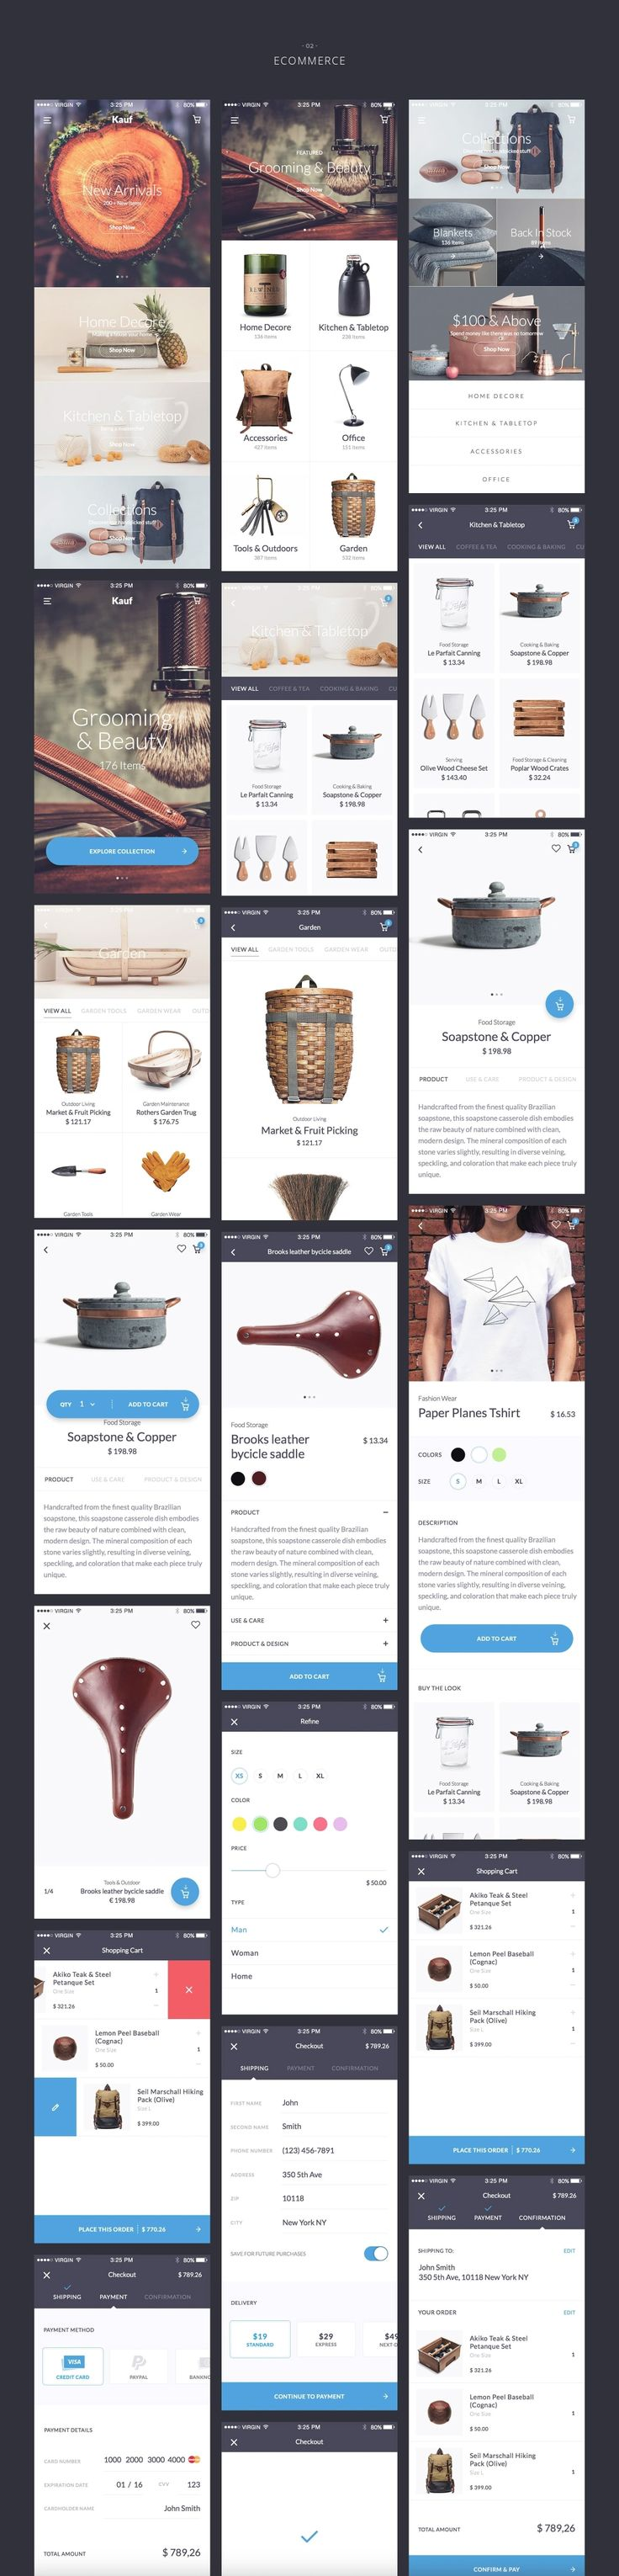 Kauf iOS UI Kit is the first interaction ready, high quality premium pack of 67 handcrafted stress-free screens, meant to speed up your design workflow. This pack comes with 5 categories (Sign-in & Sign-up, E-commerce, Reader & Articles, Profiles & Social, Menu), which contains ready-to-use full vector screens. You can edit, customize, mix the UI elements as you like.